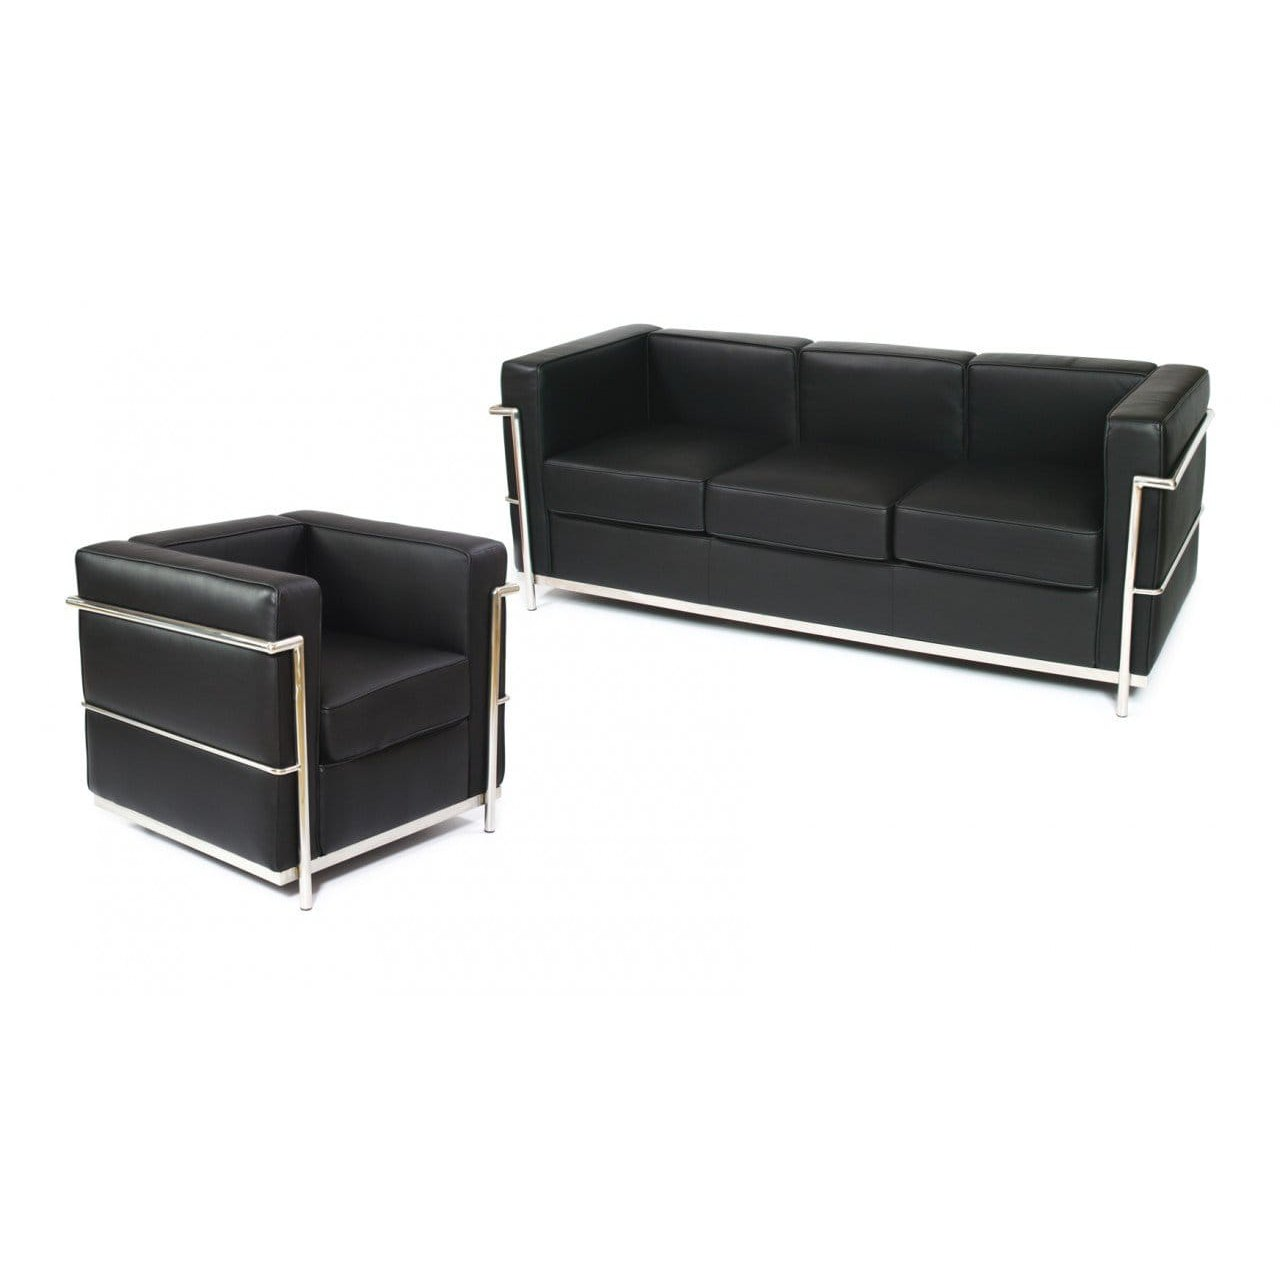 Sofa Scandinavian Jakarta Le Corbusier Replica 3 Seater Sofa Comfort Design The Chair